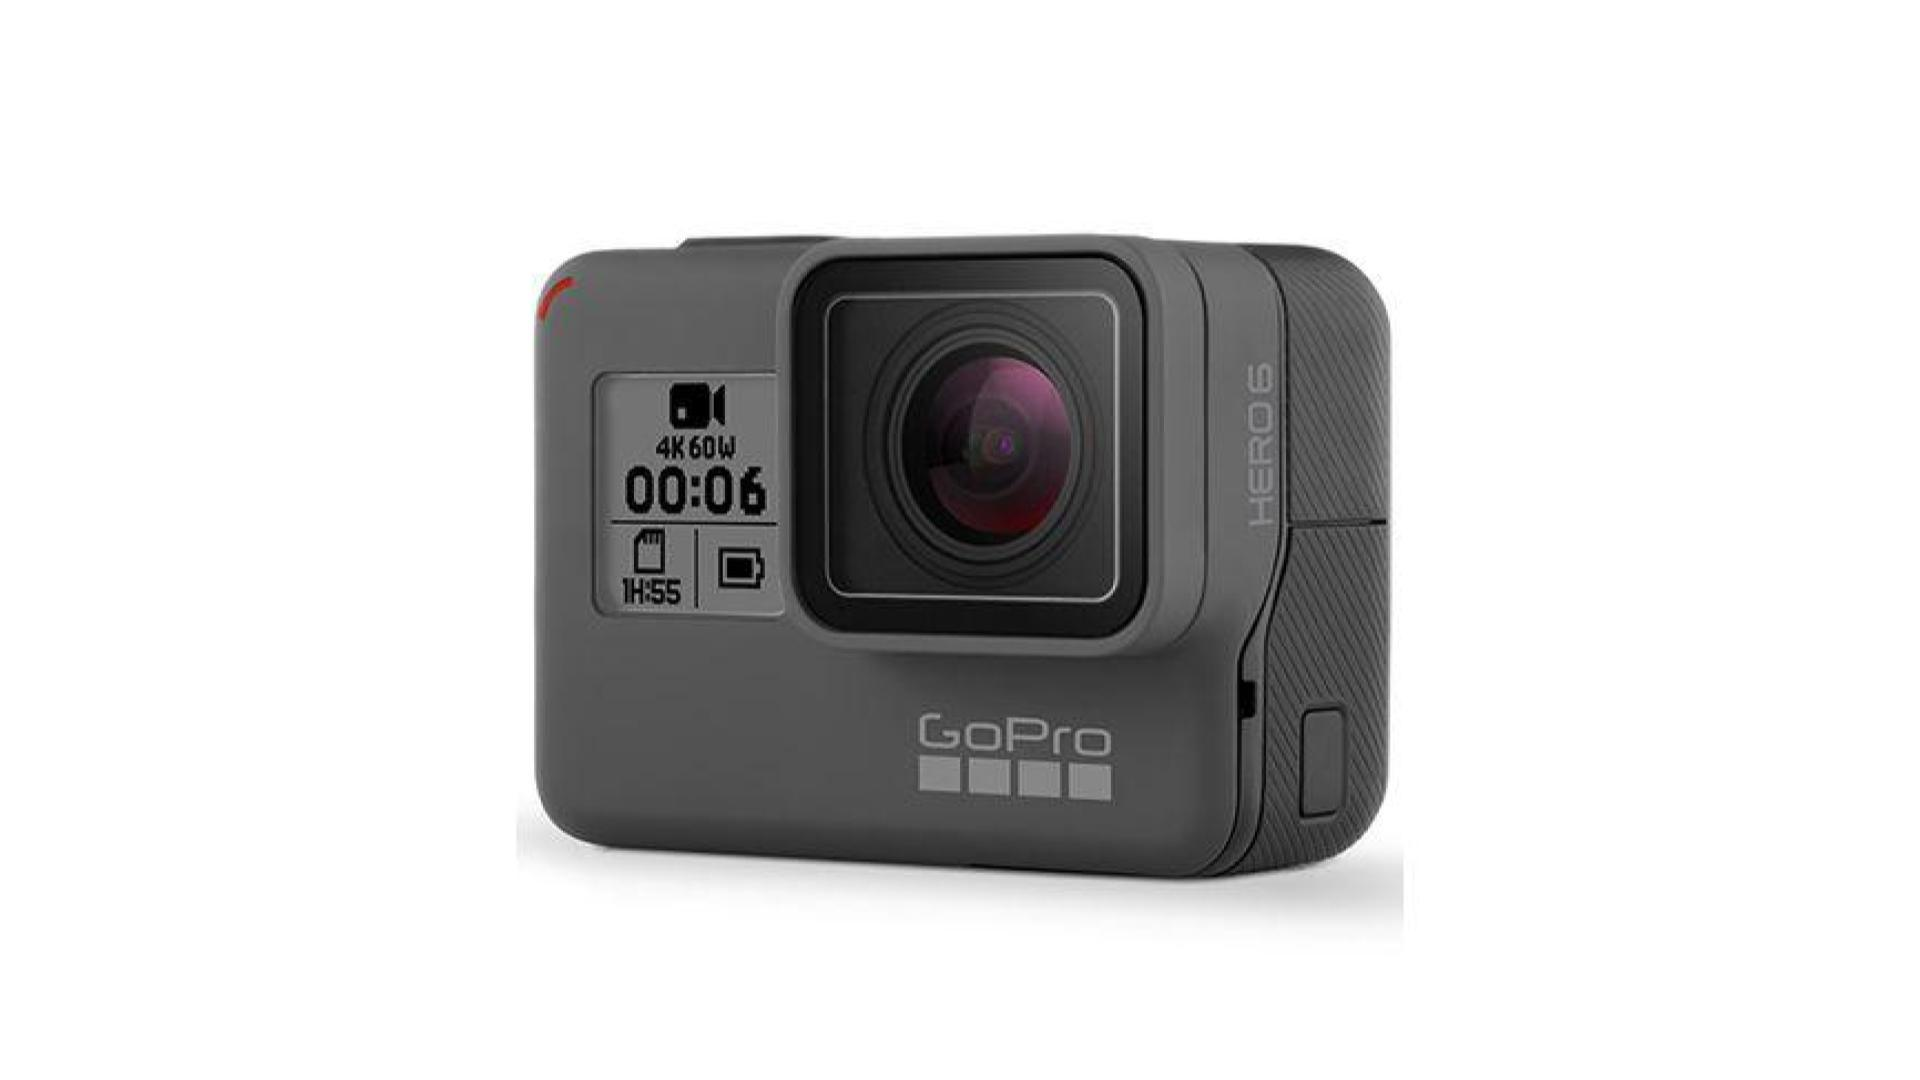 🔥 French Days : le prix de la GoPro Hero6 Black descend à 279 euros